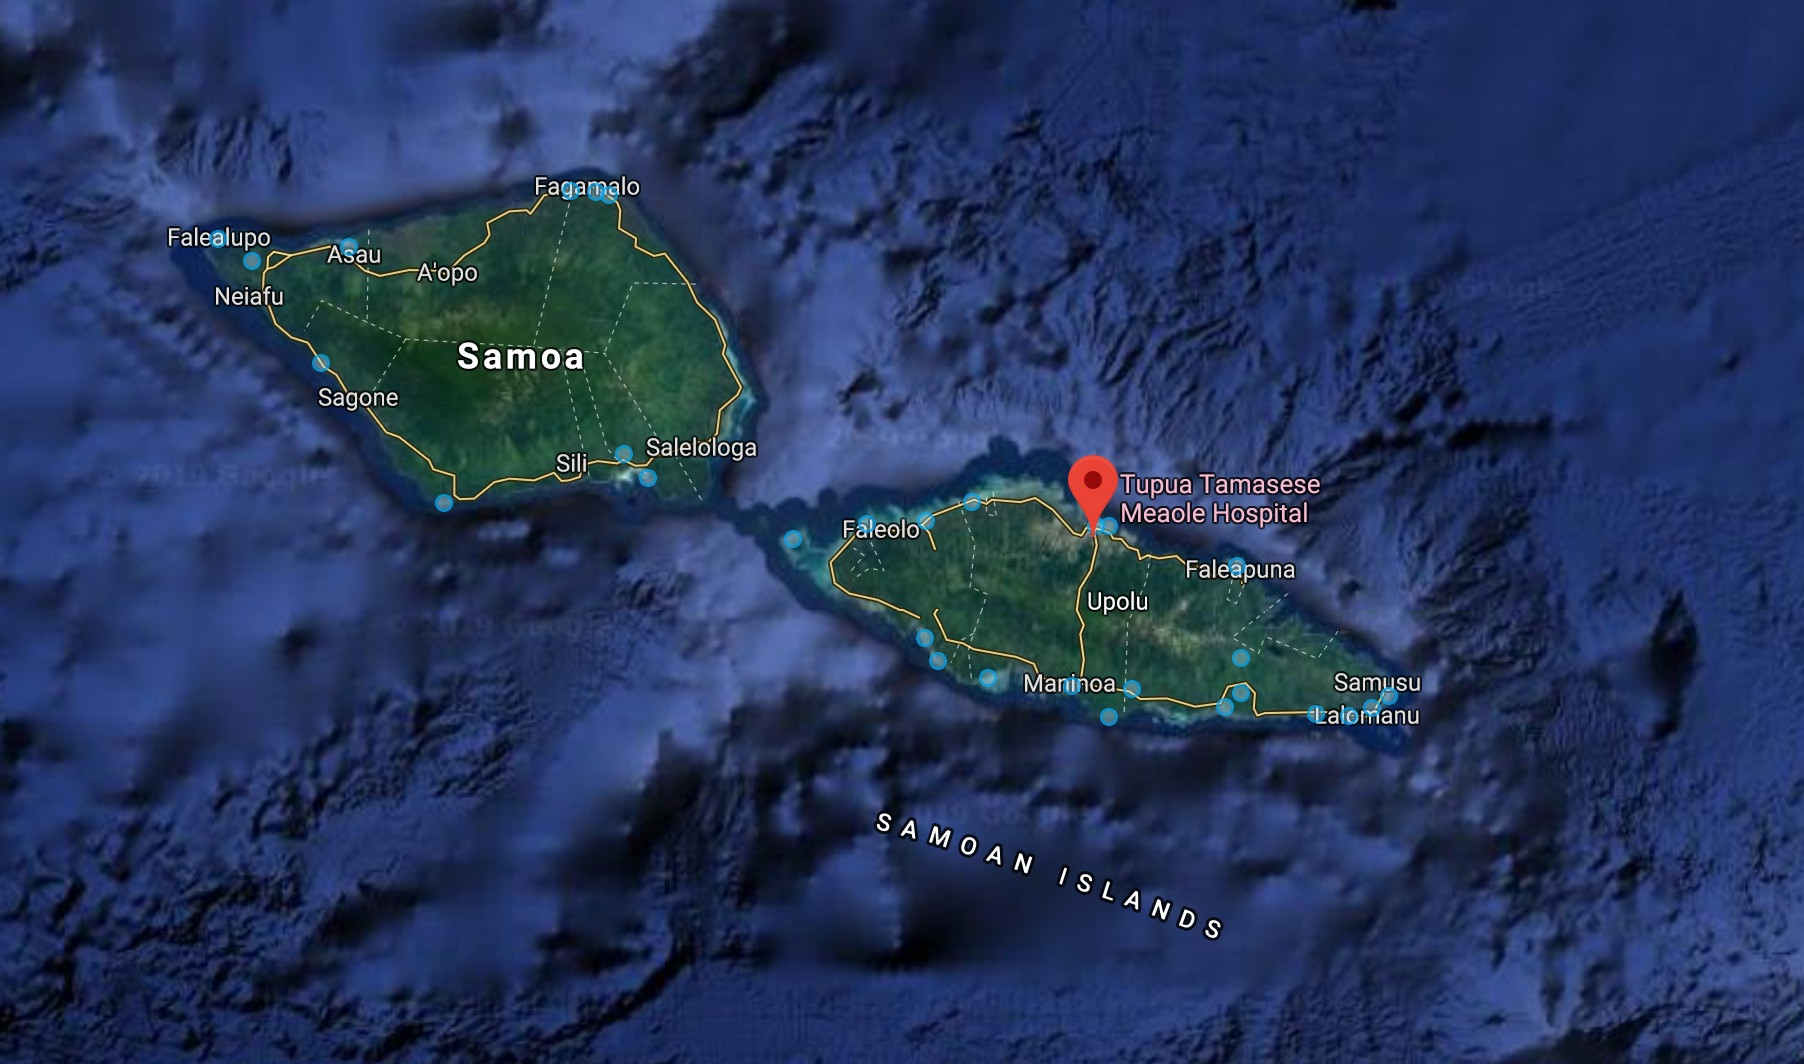 Measles in Samoa: how a small island nation found itself in the grips of an outbreak disaster